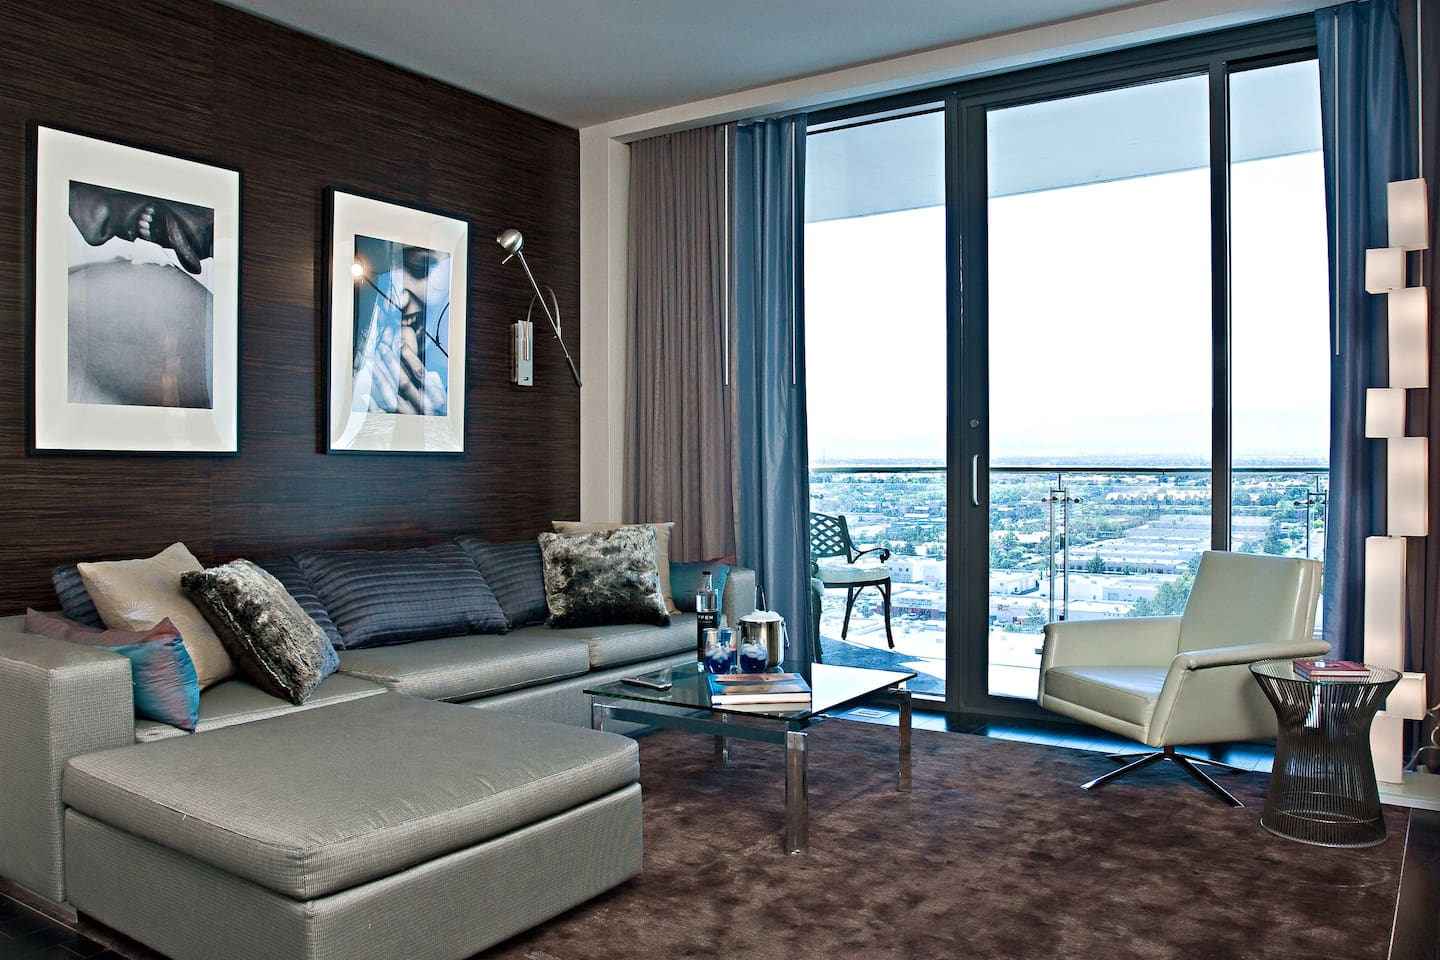 One Bedroom Suite At Palms Place Palms Place Rated R Luxury Suite Condominiums For Rent In Las